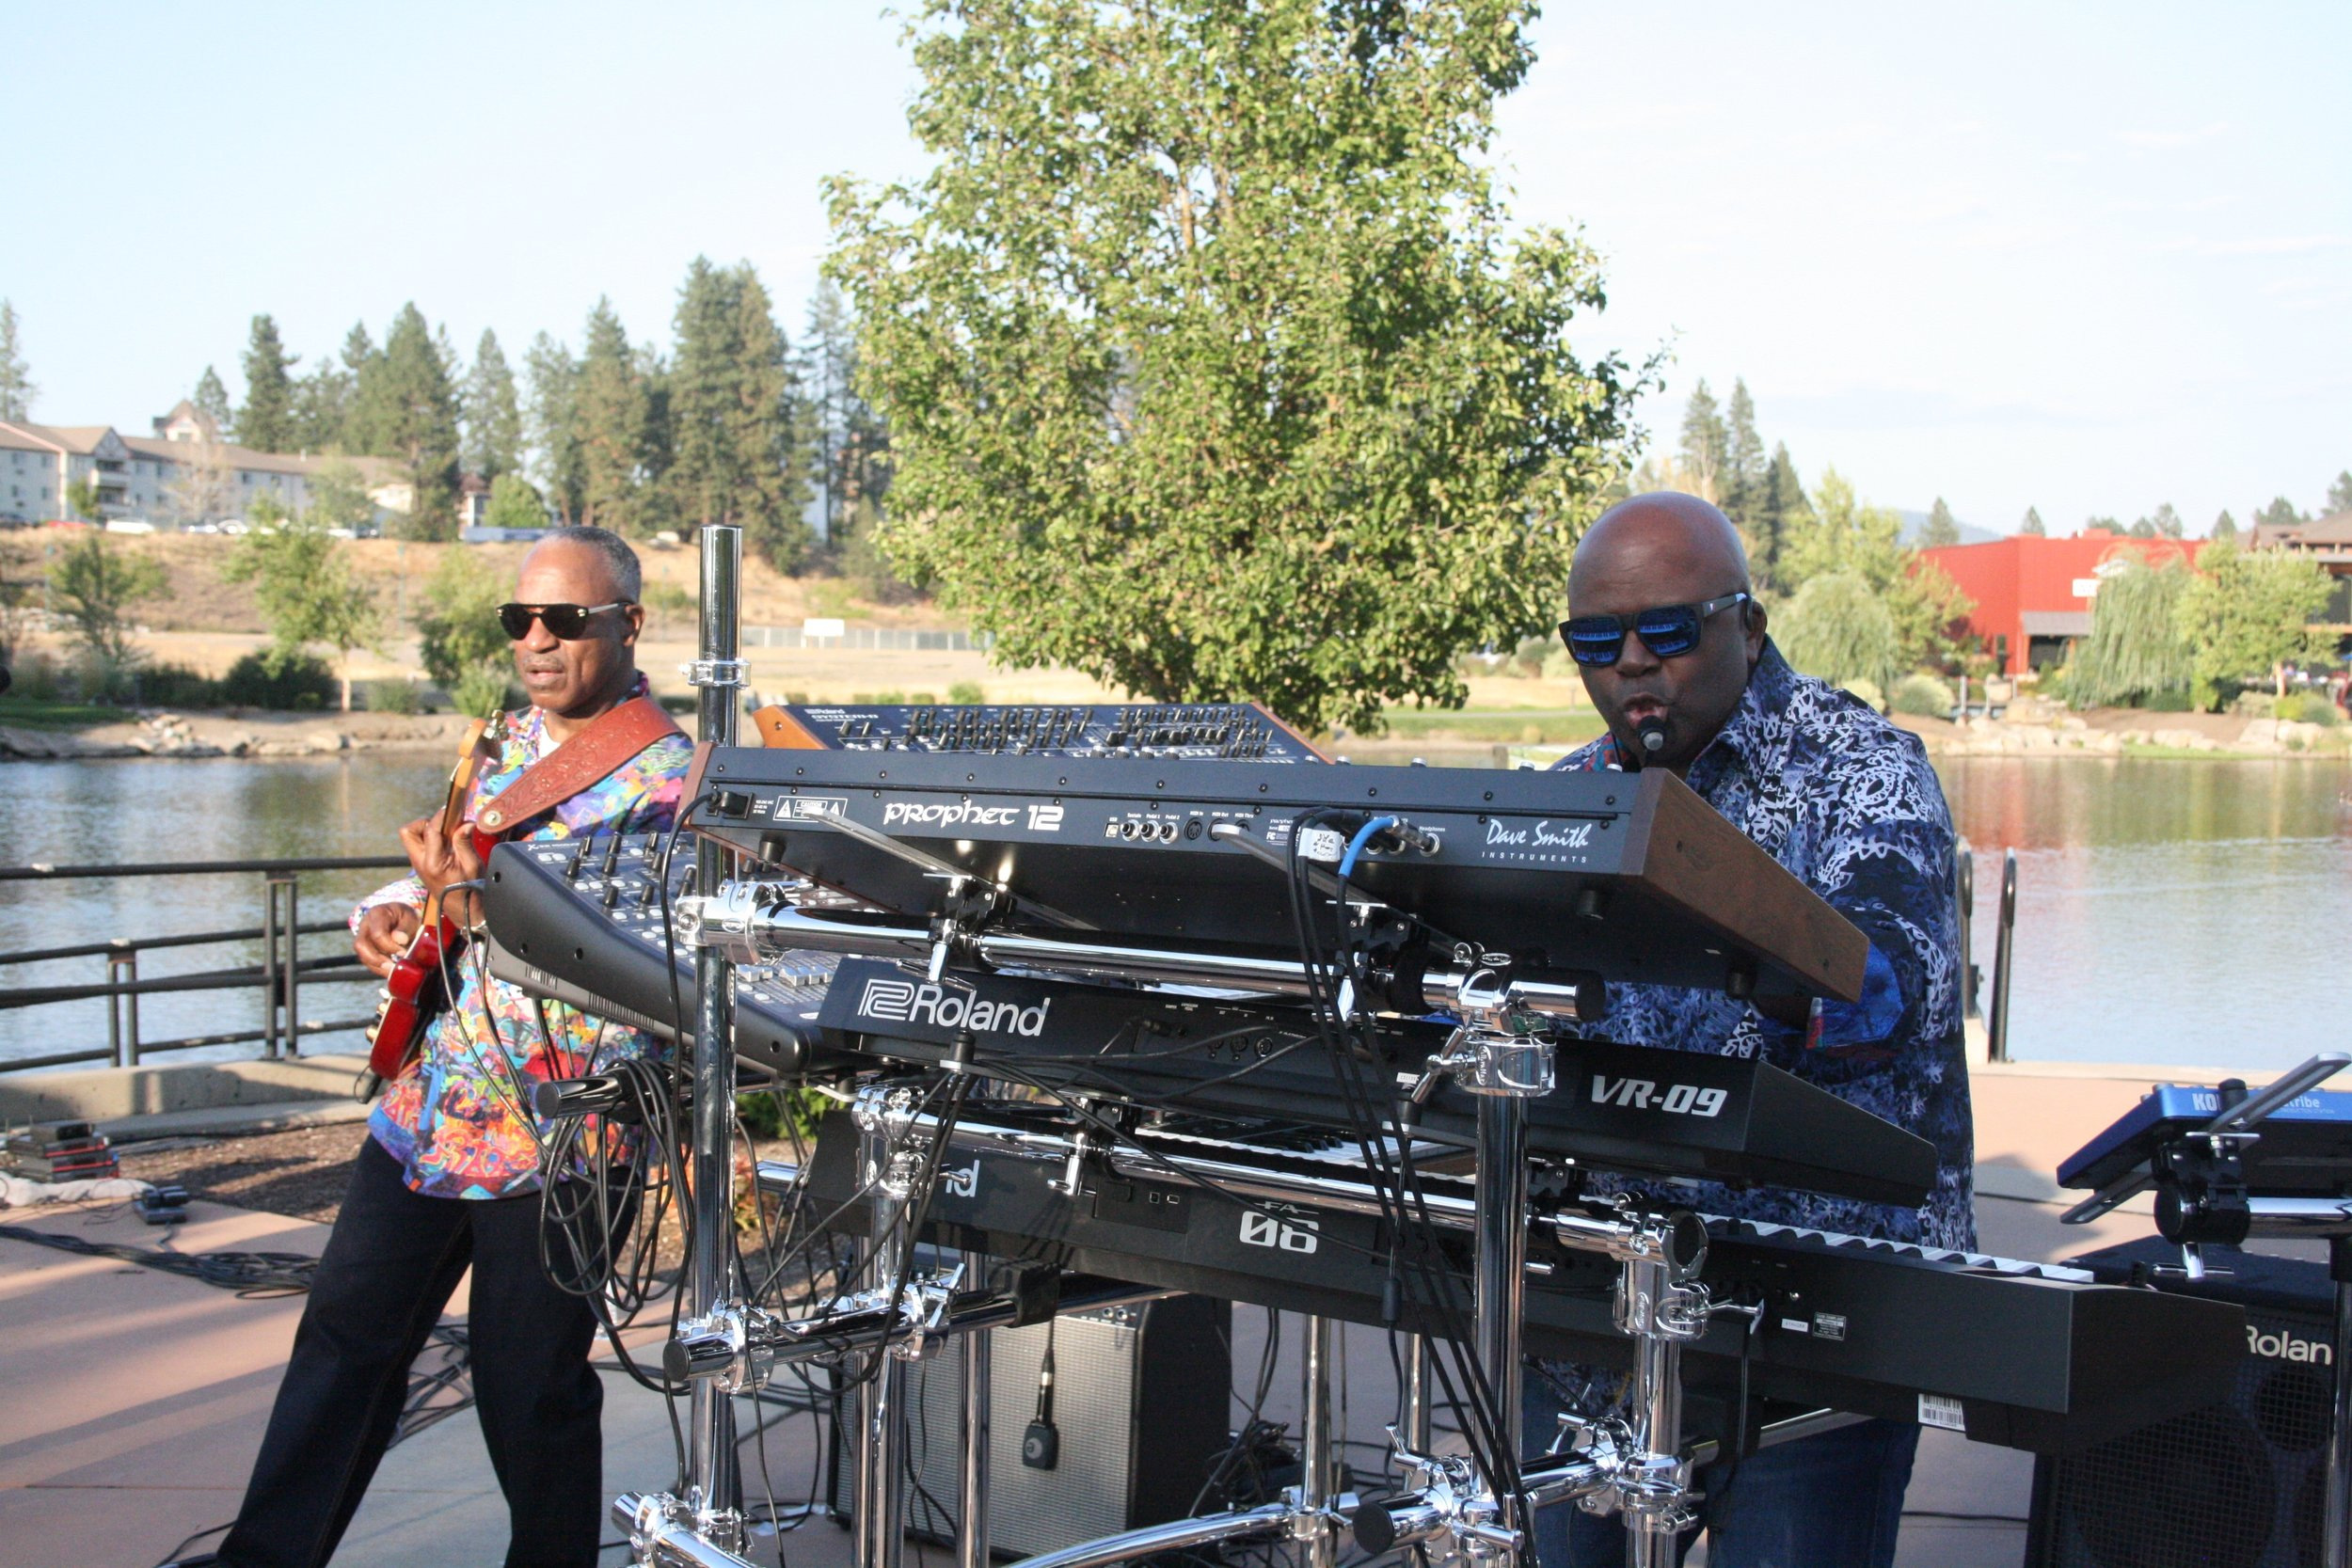 Friday August 30th - FREE Concert featuring Martin & Moore - Riverstone Amphitheater –710 East Mullen Avenue - Coeur d'Alene, ID